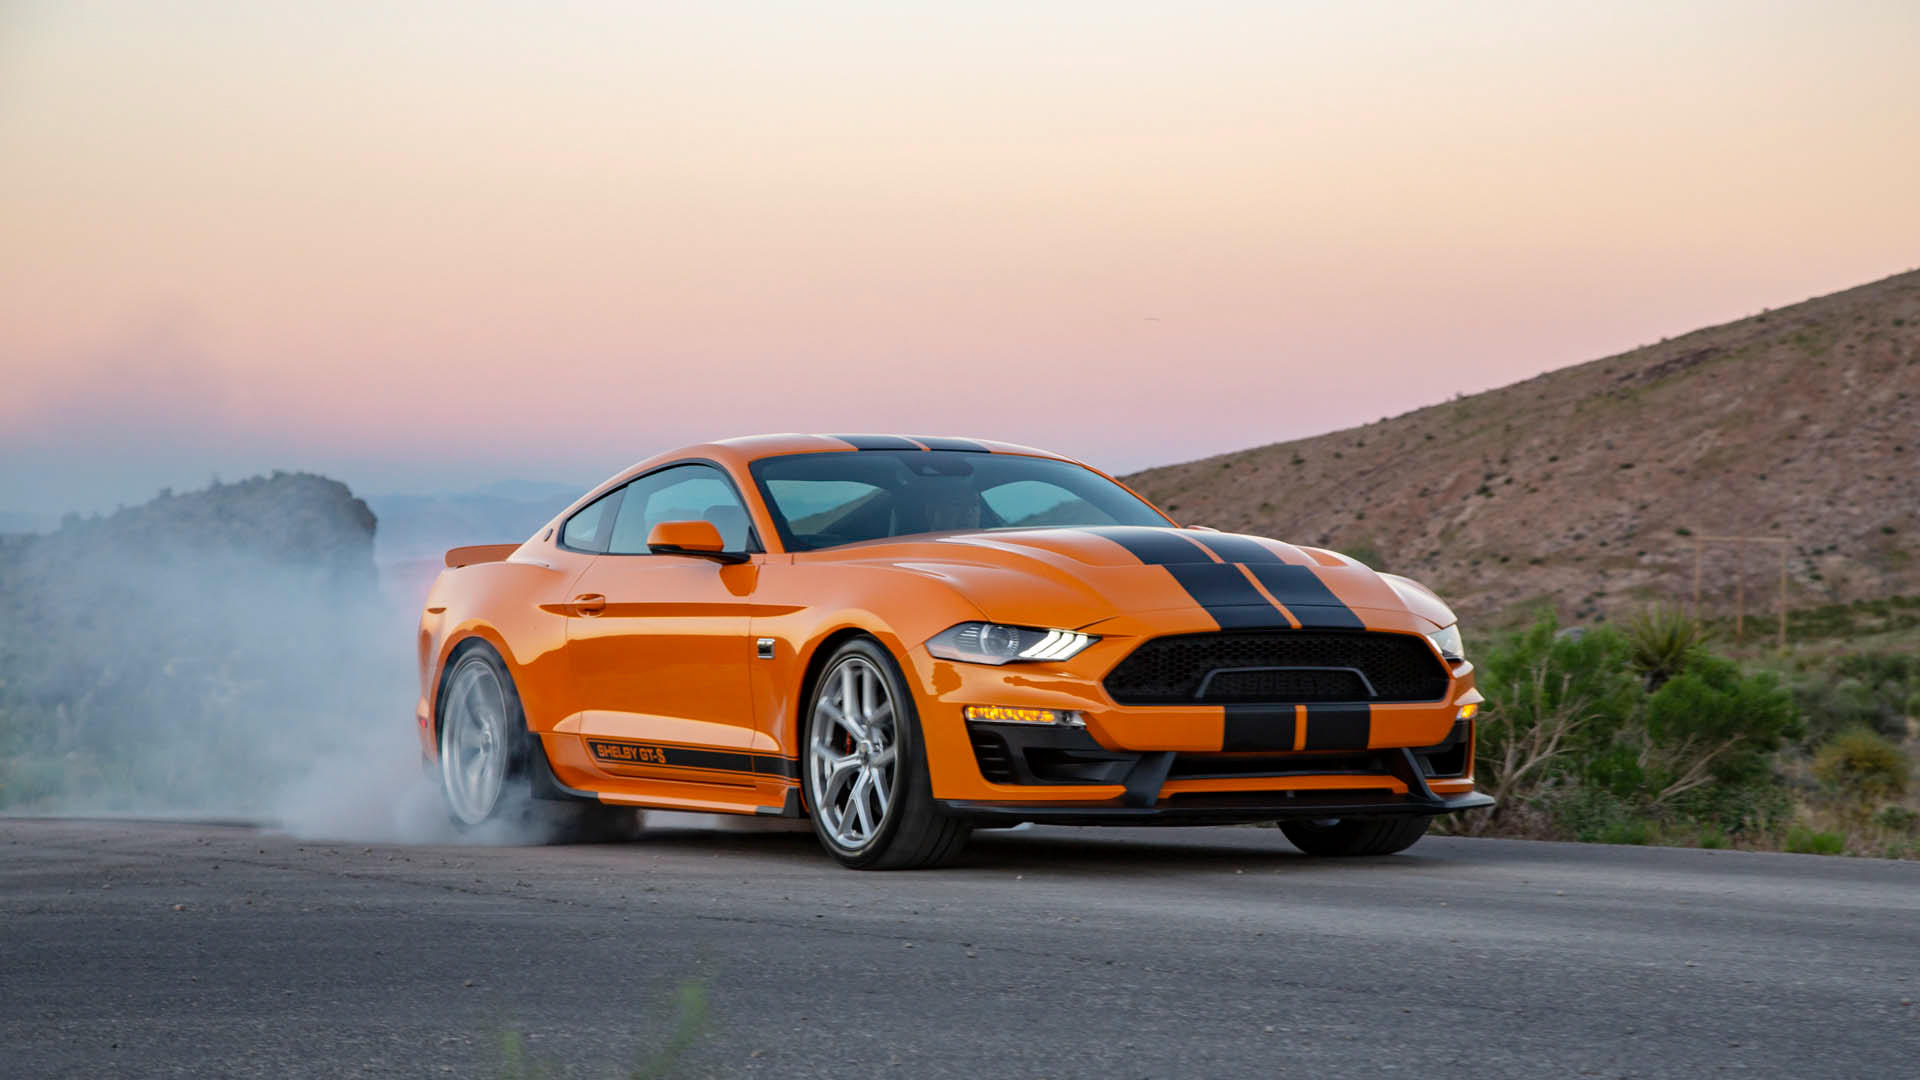 2019 Ford Shelby GT-S Mustang